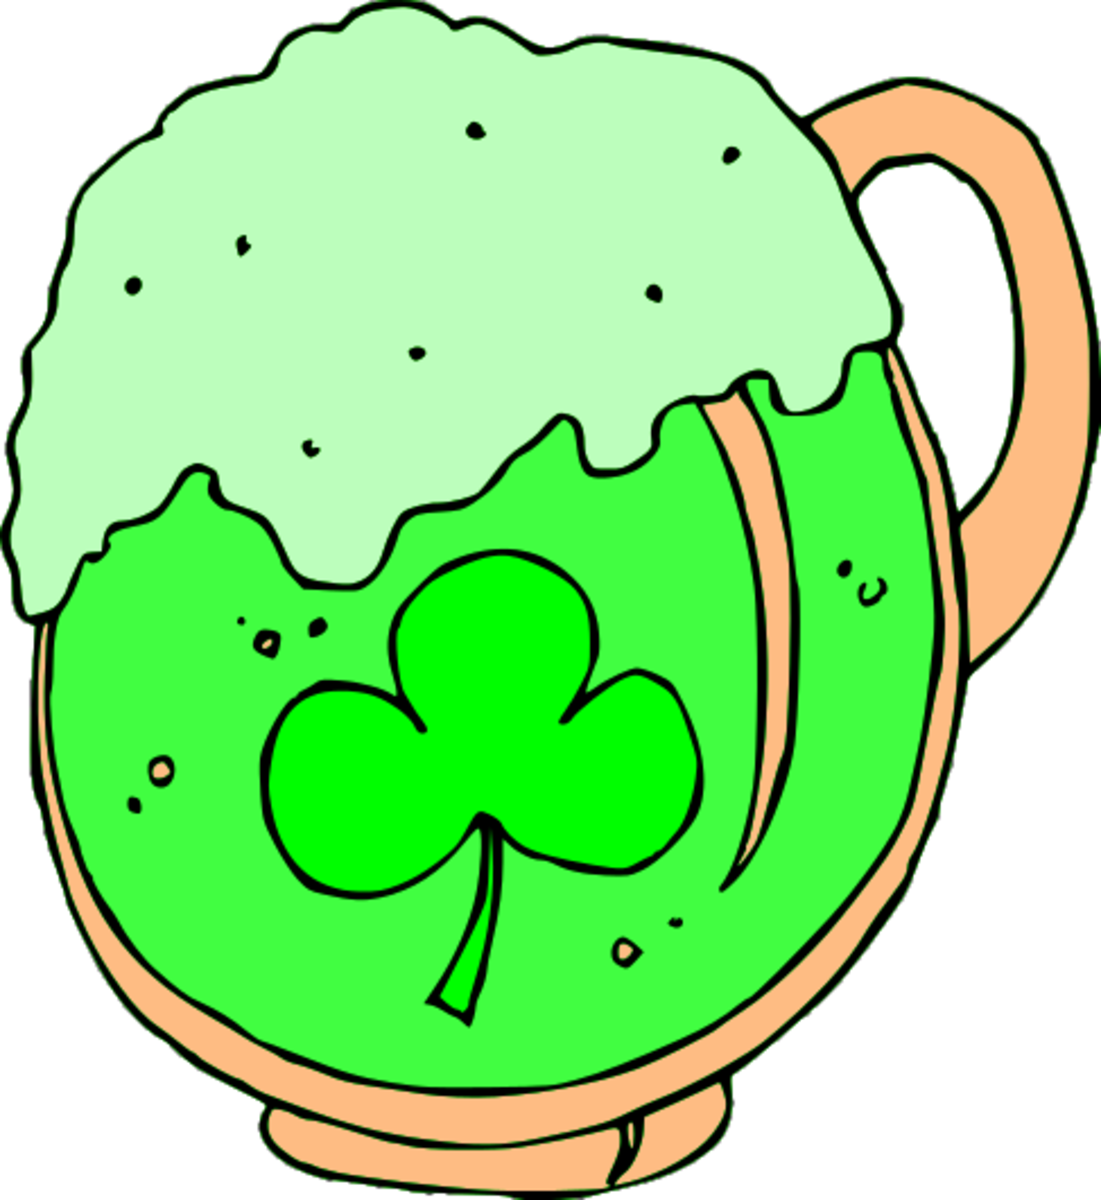 Green Beer with Shamrock Mug